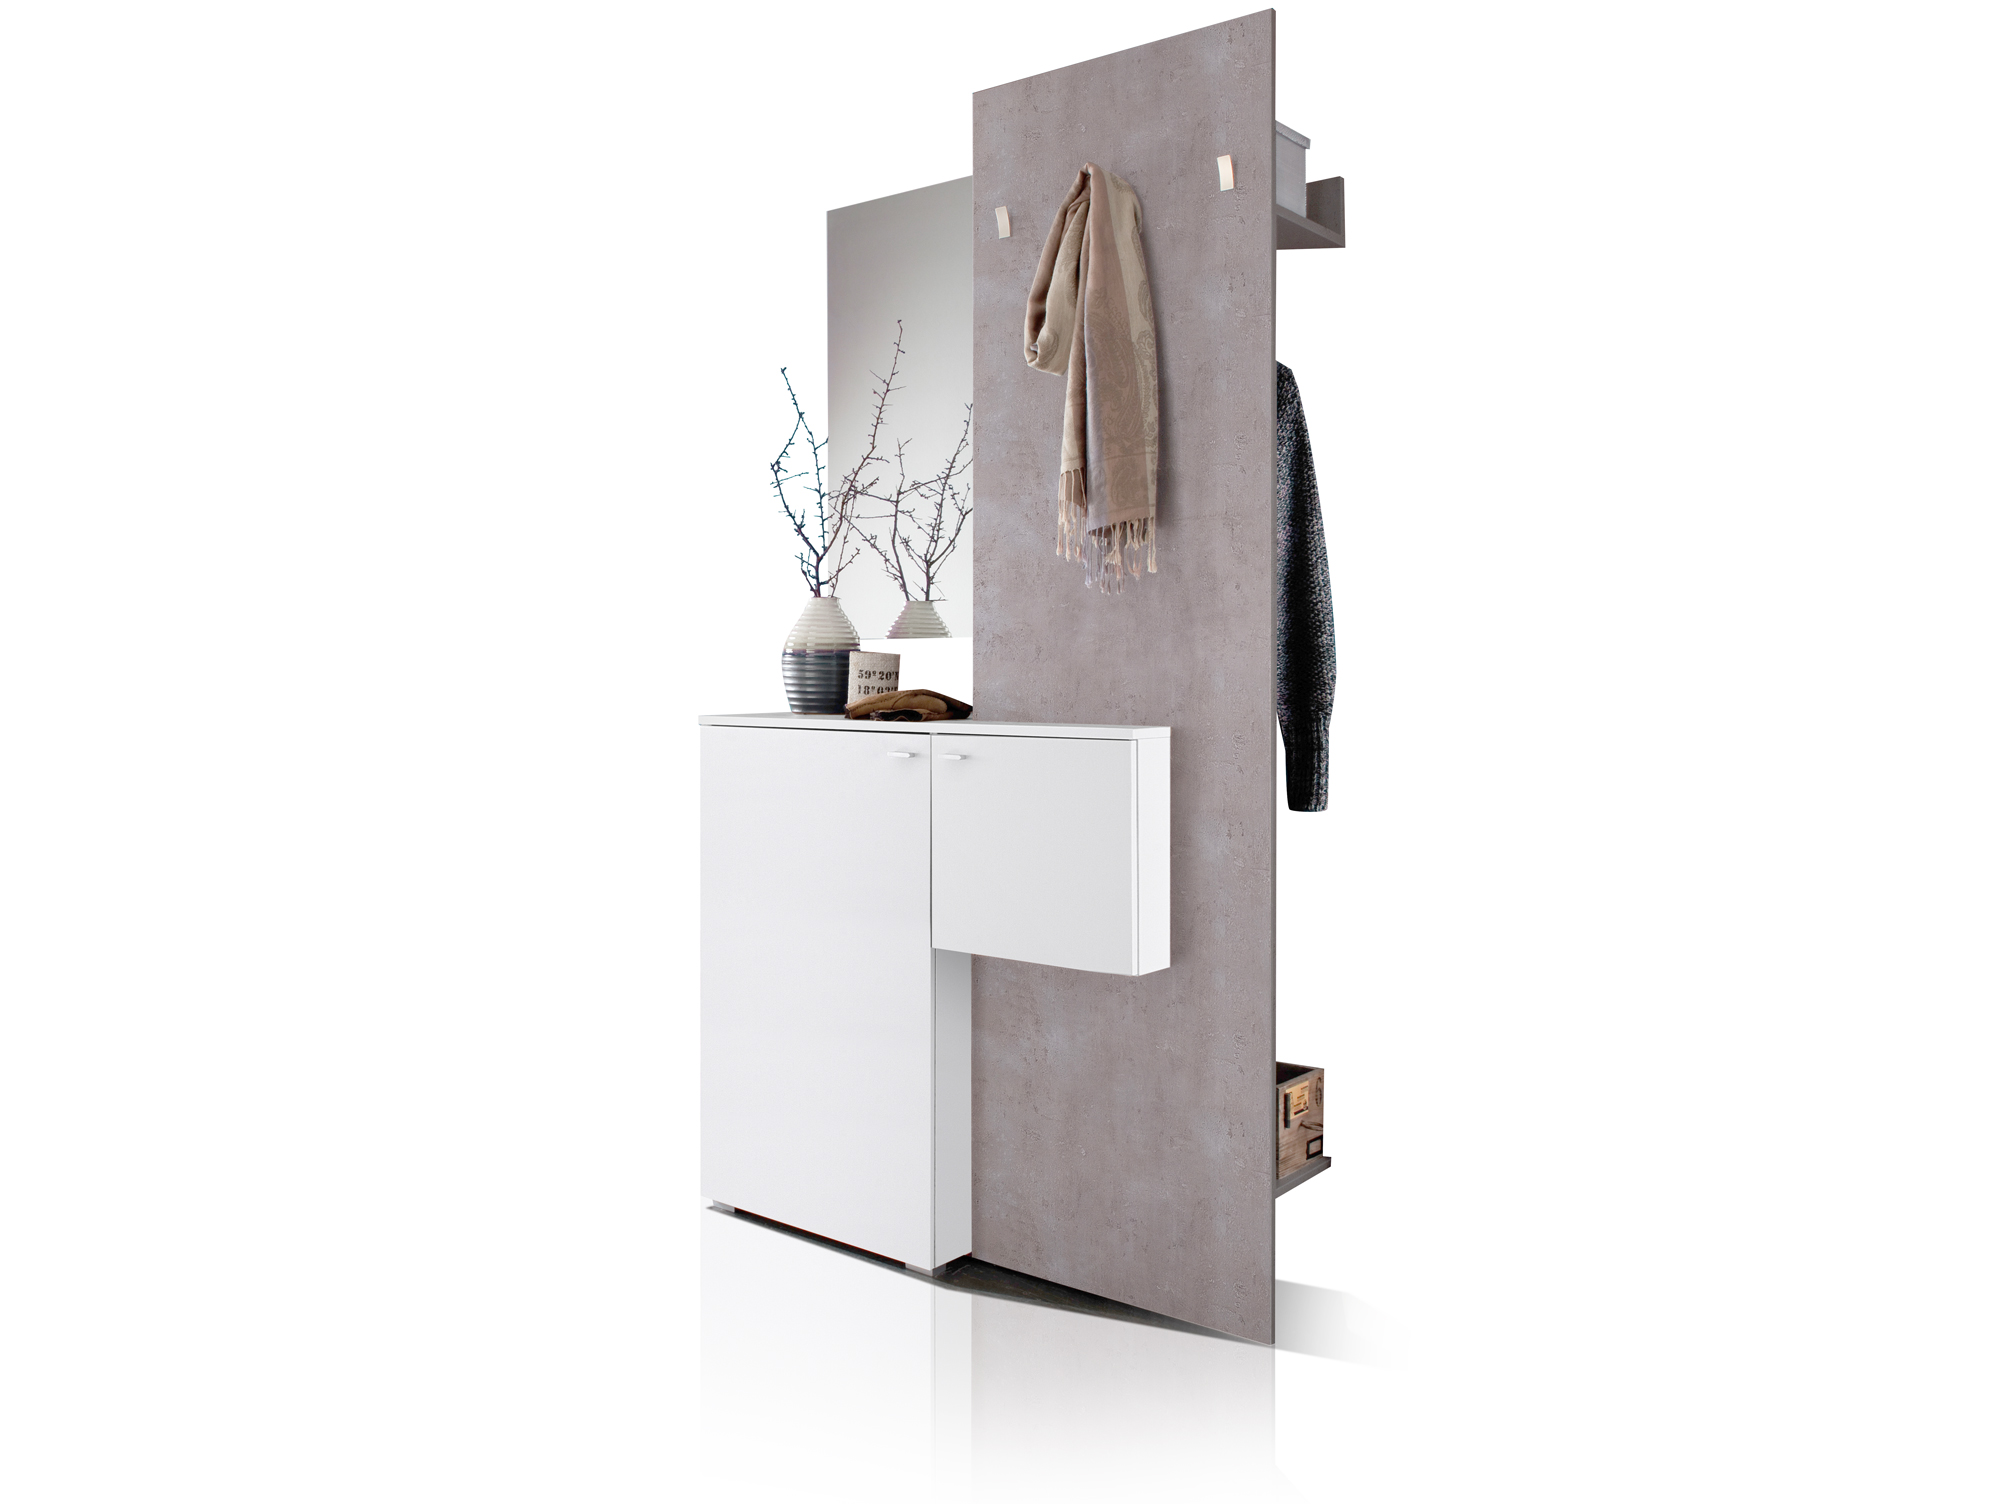 zarah komplett garderobe weiss beton. Black Bedroom Furniture Sets. Home Design Ideas